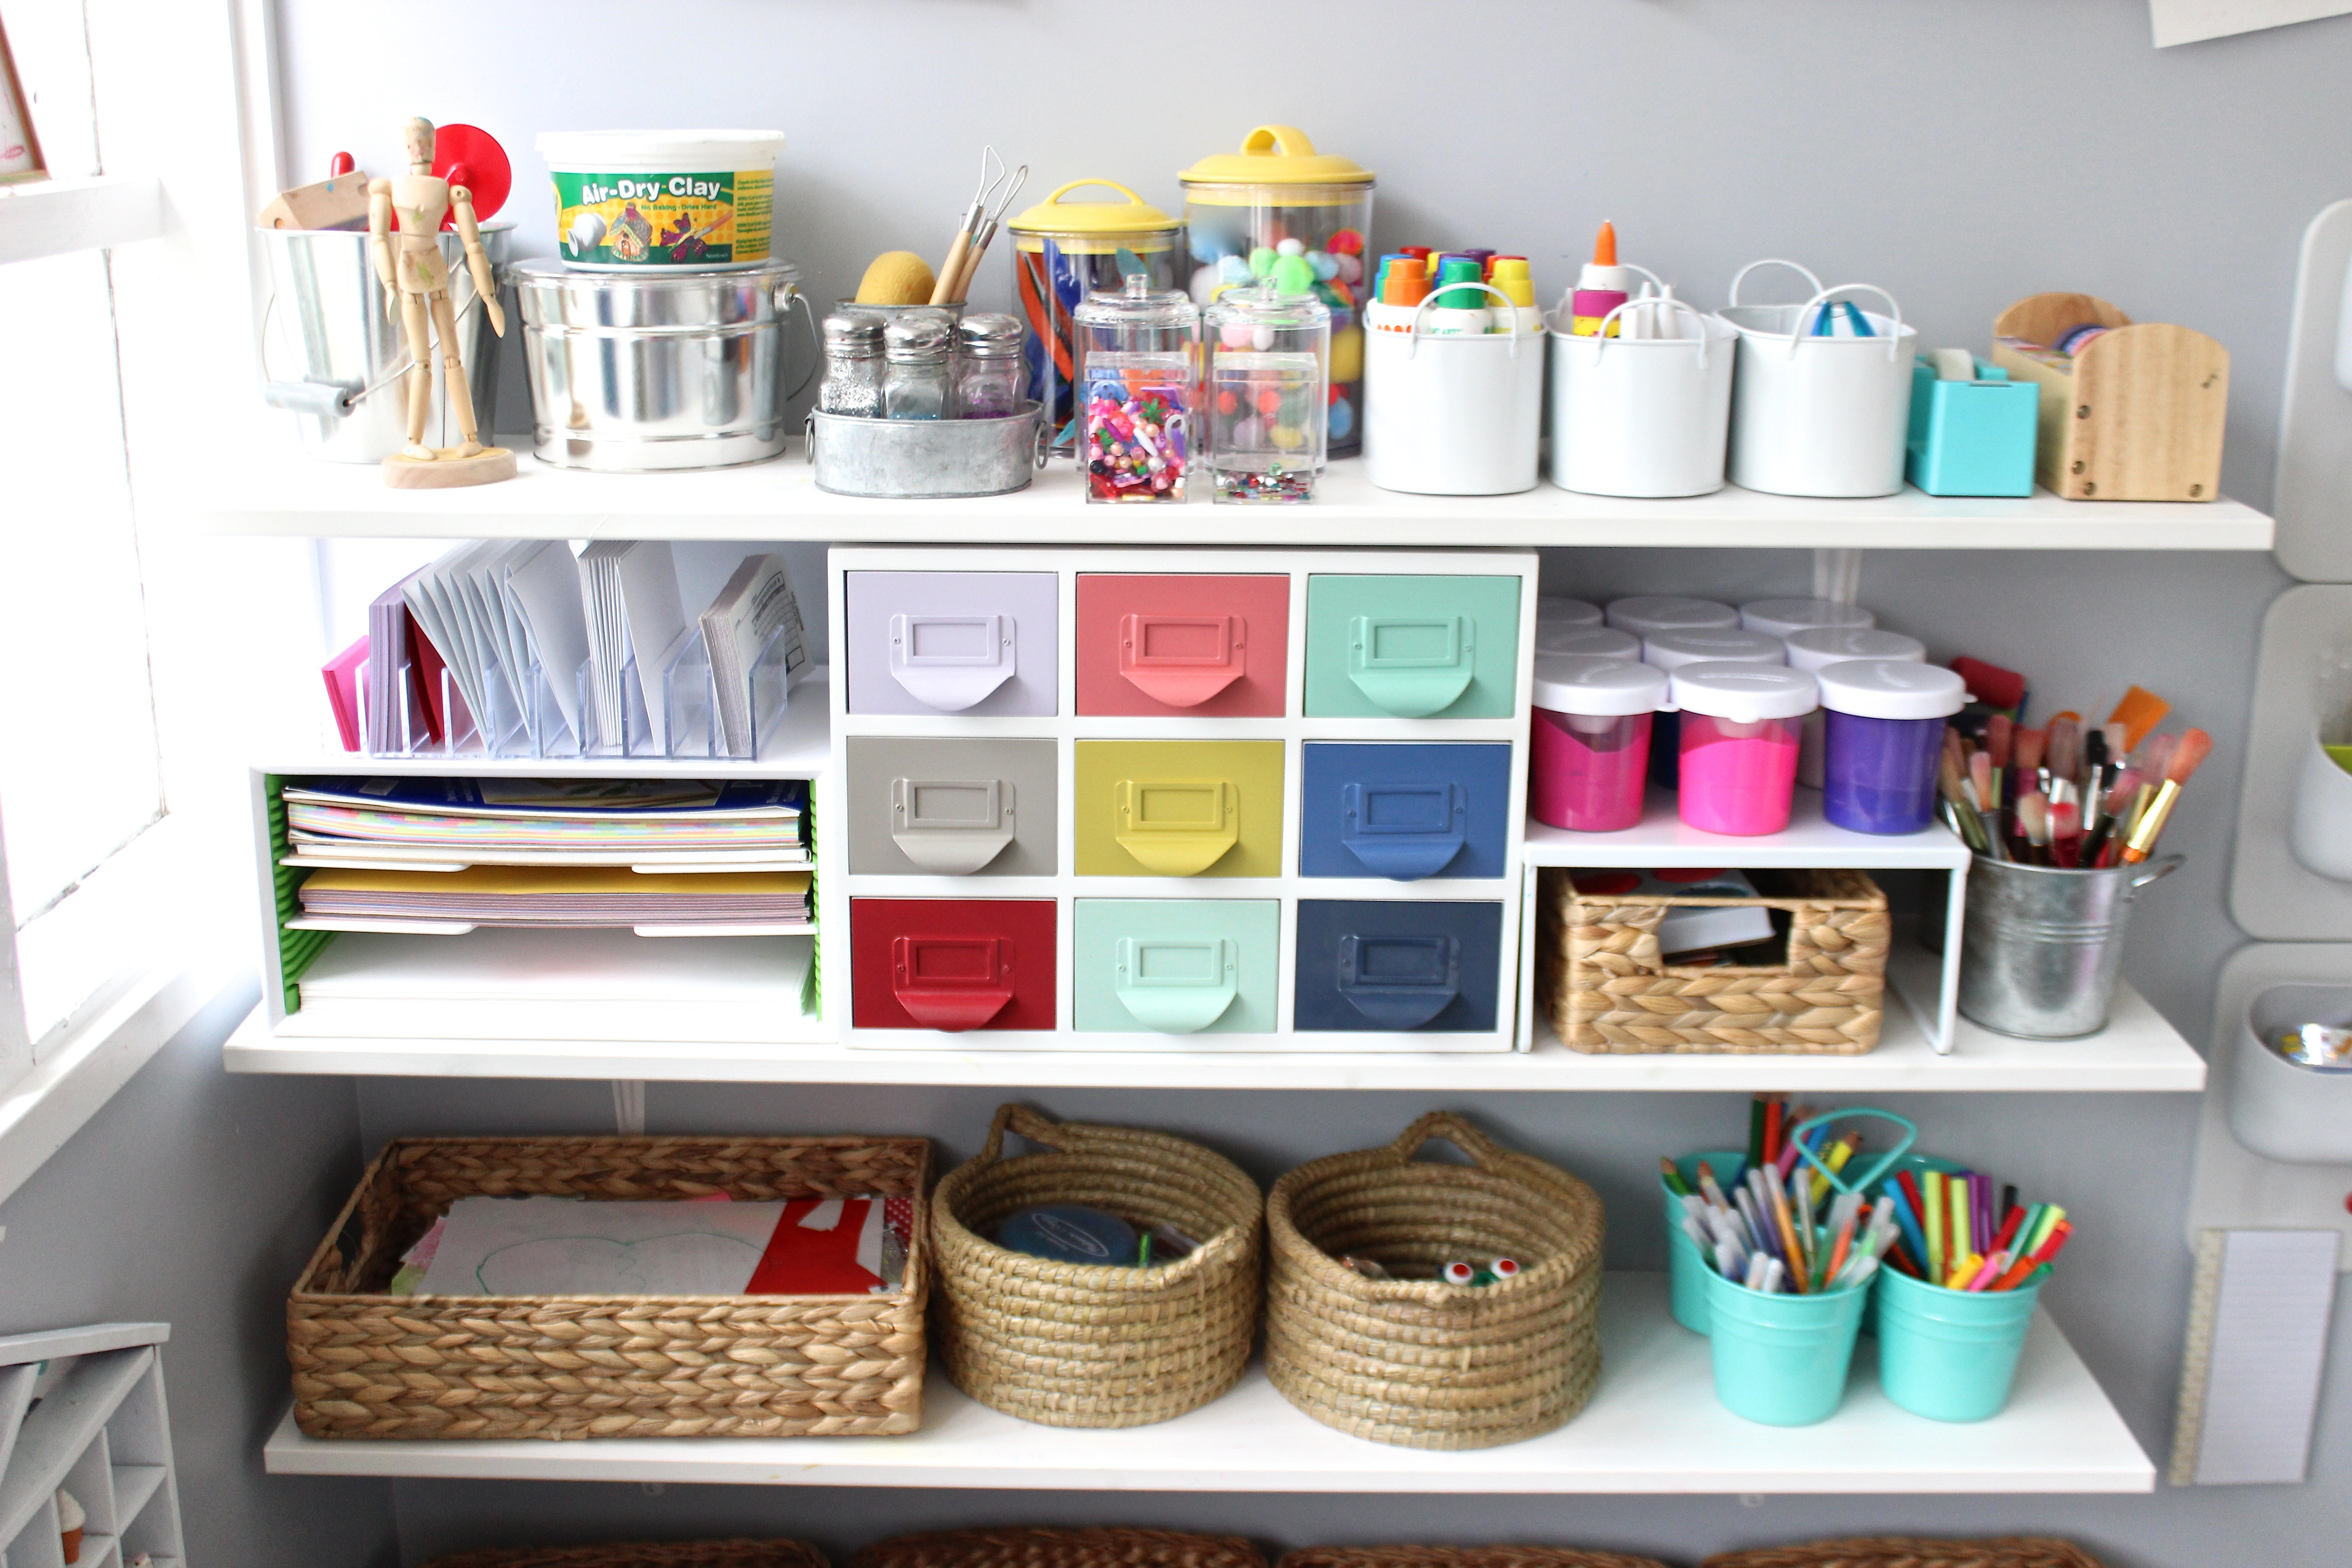 Home Art Studio Furniture 10 Tips On How To Create A Fun Yet Stylish Art Space For Kids